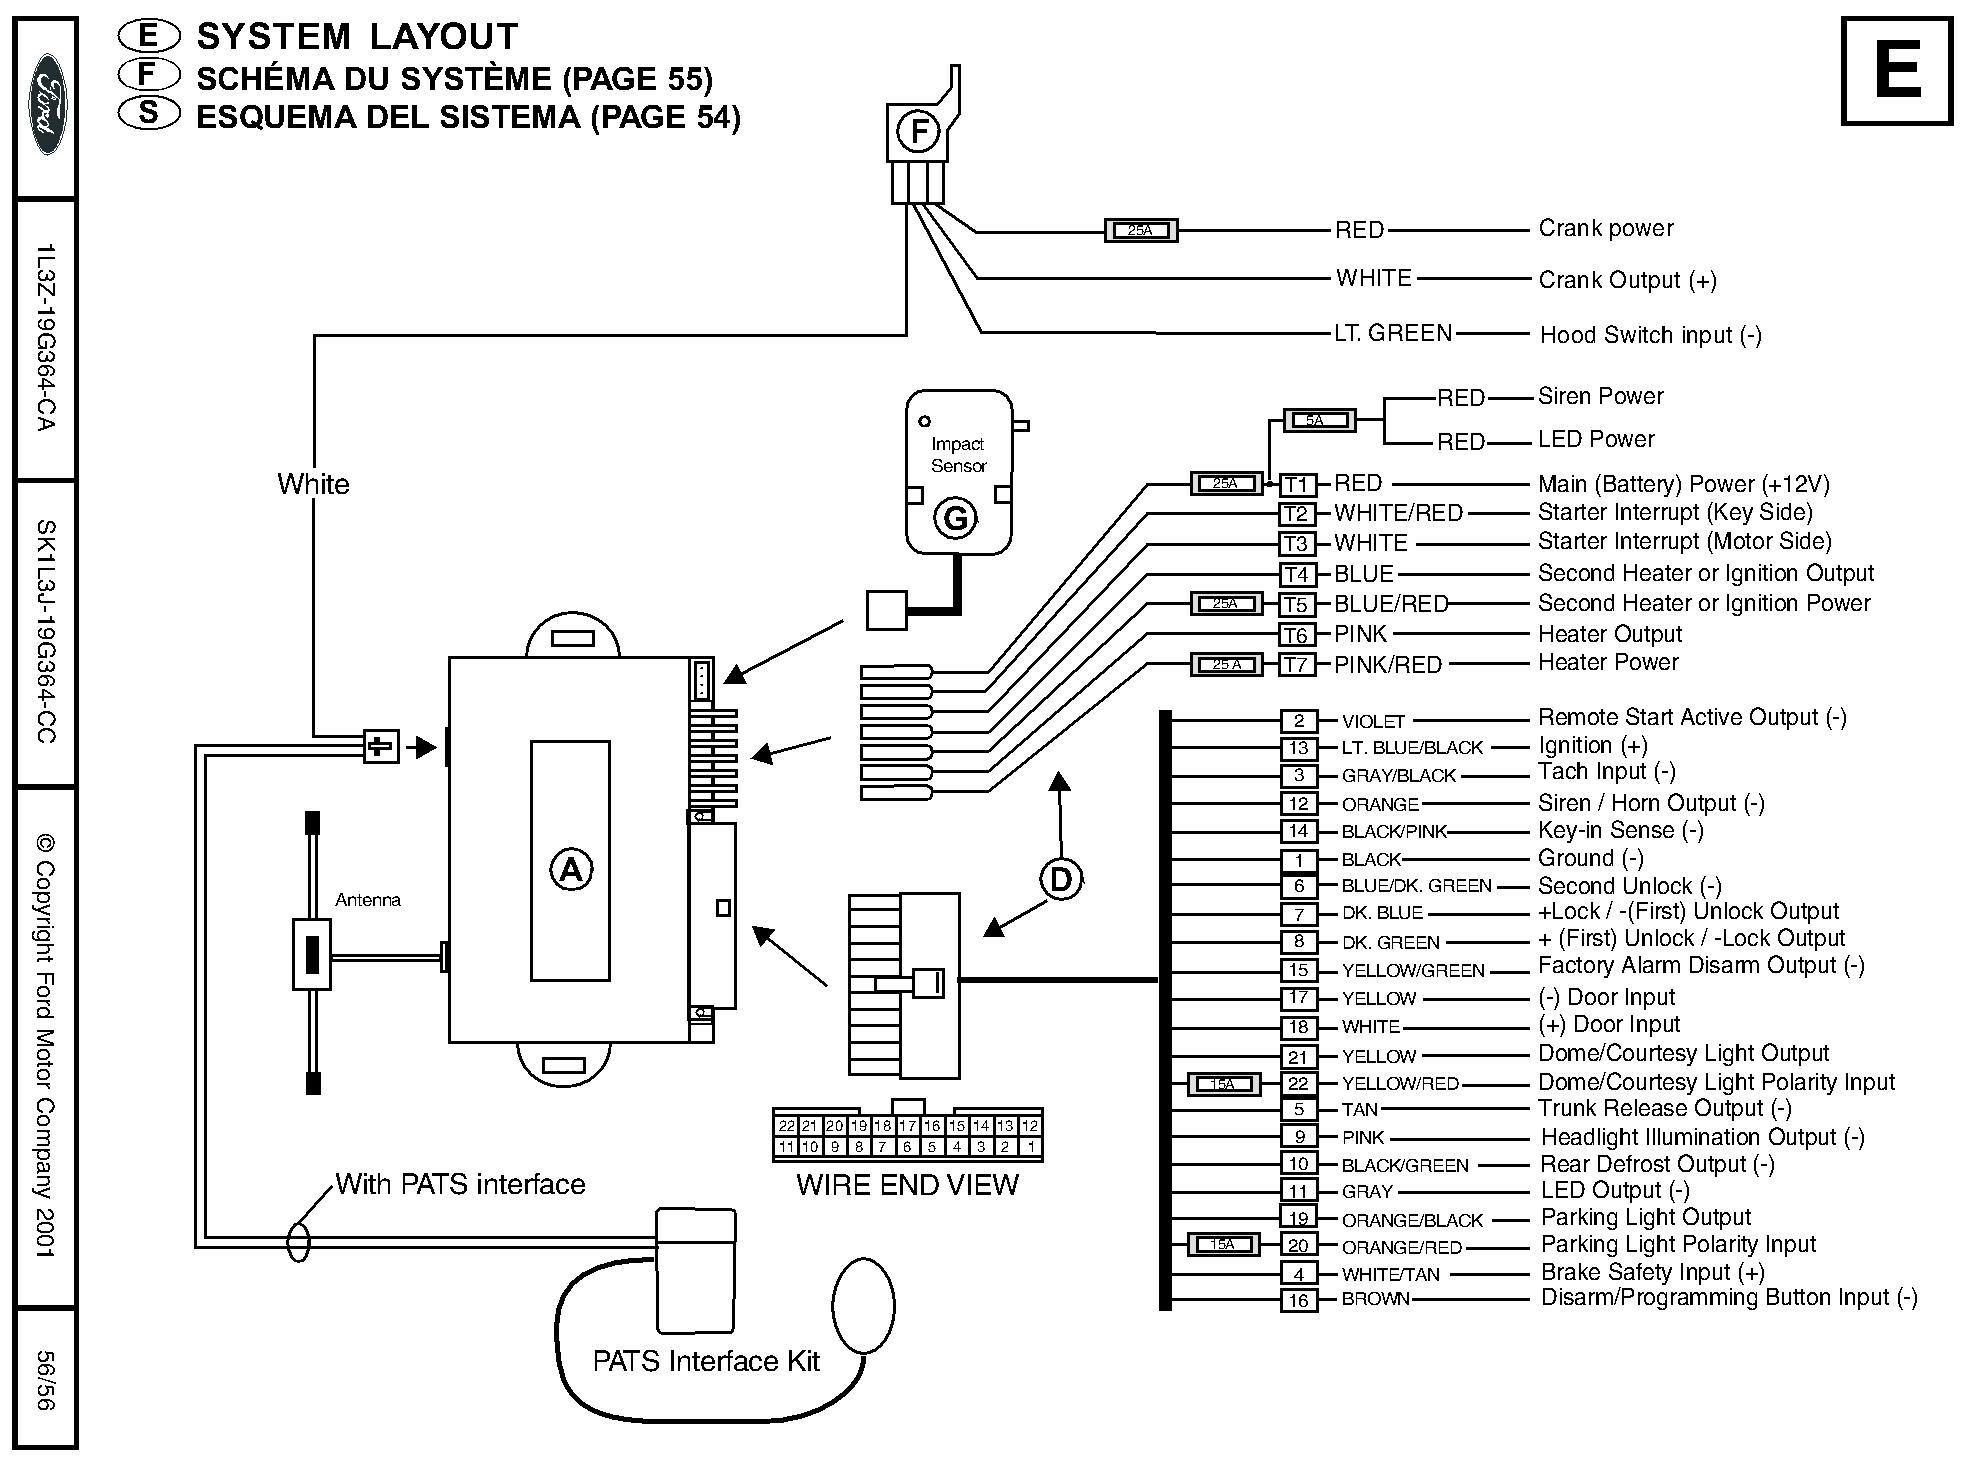 avital 5303l wiring diagram avital 4x03 remote start wiring diagram | free wiring diagram